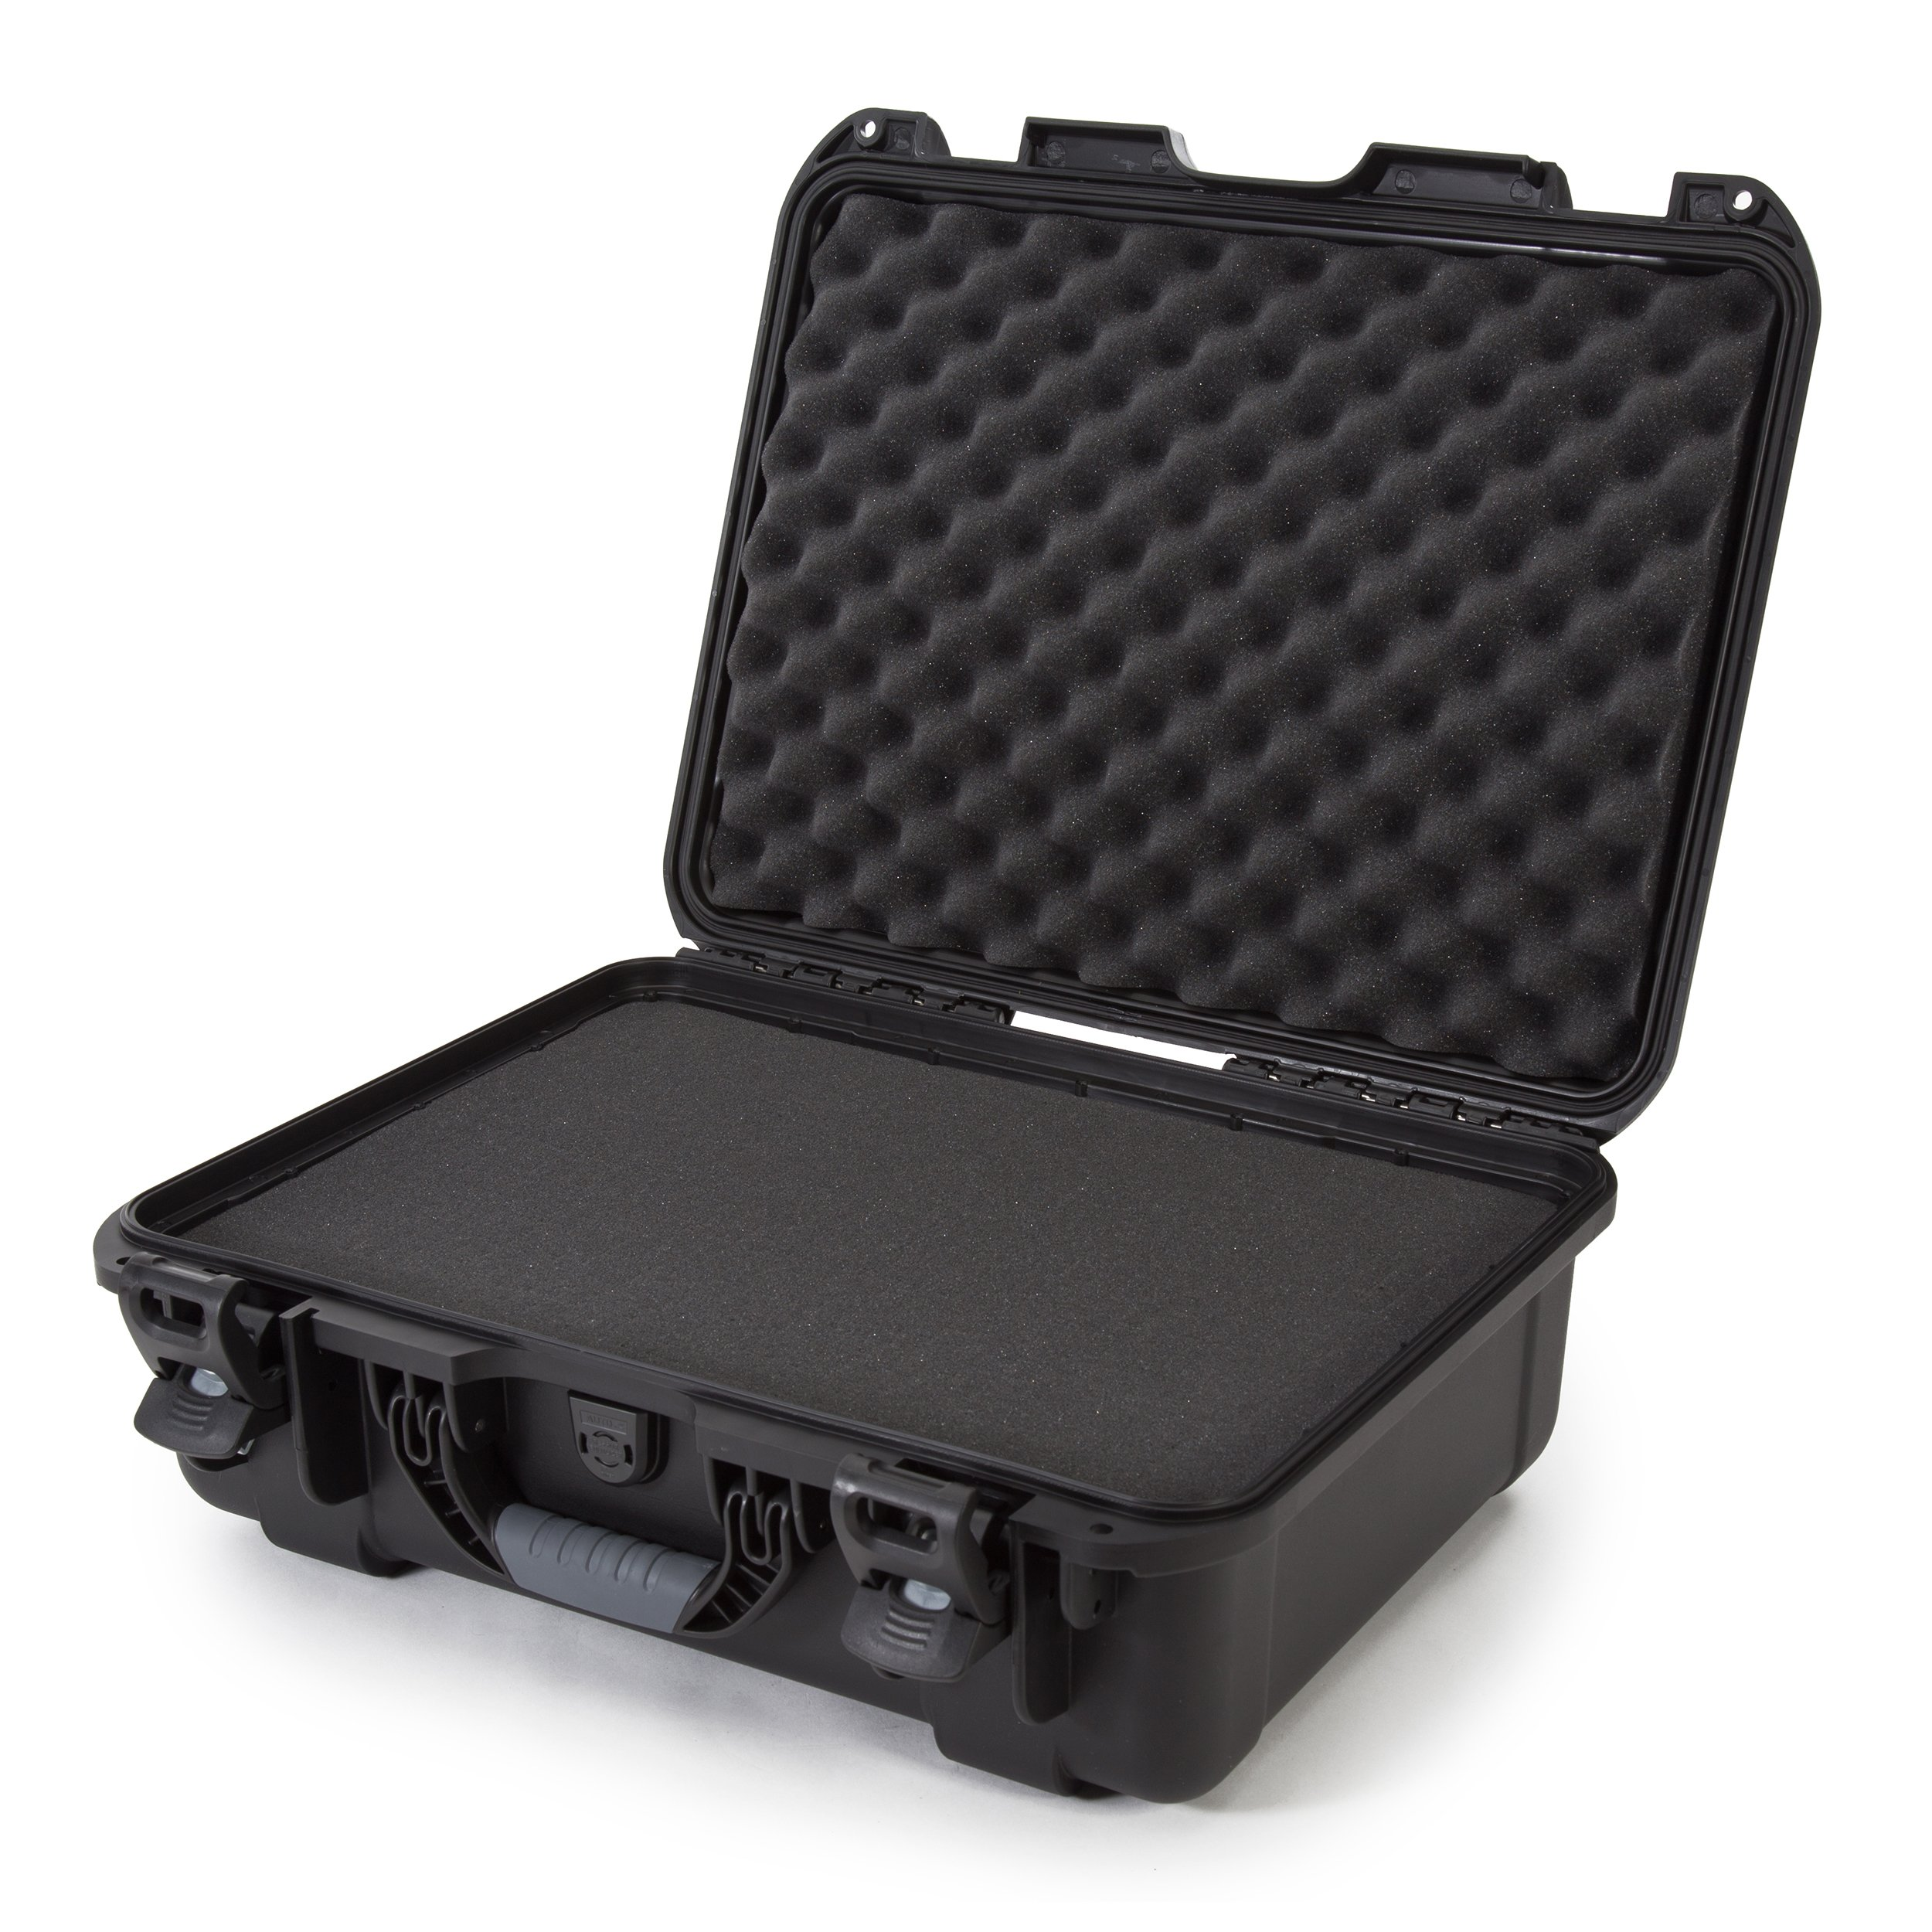 Nanuk 930 Waterproof Hard Case with Foam Insert - Black